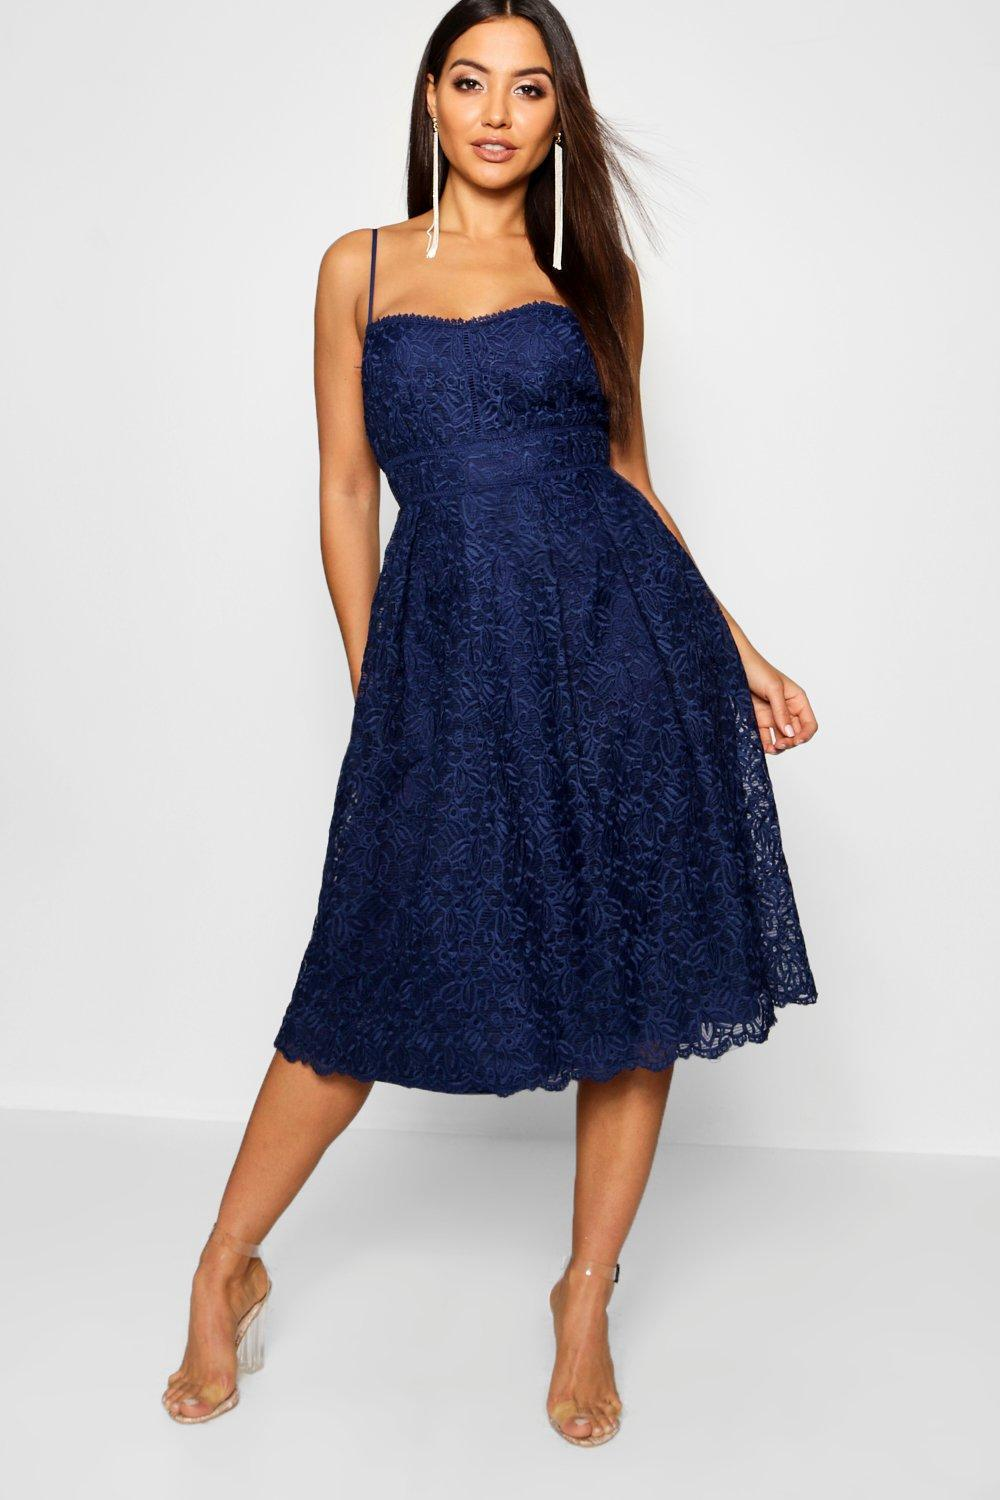 Boohoo Boutique Embroidered Strappy Midi Skater Dress in Blue - Lyst 2a4f5153e